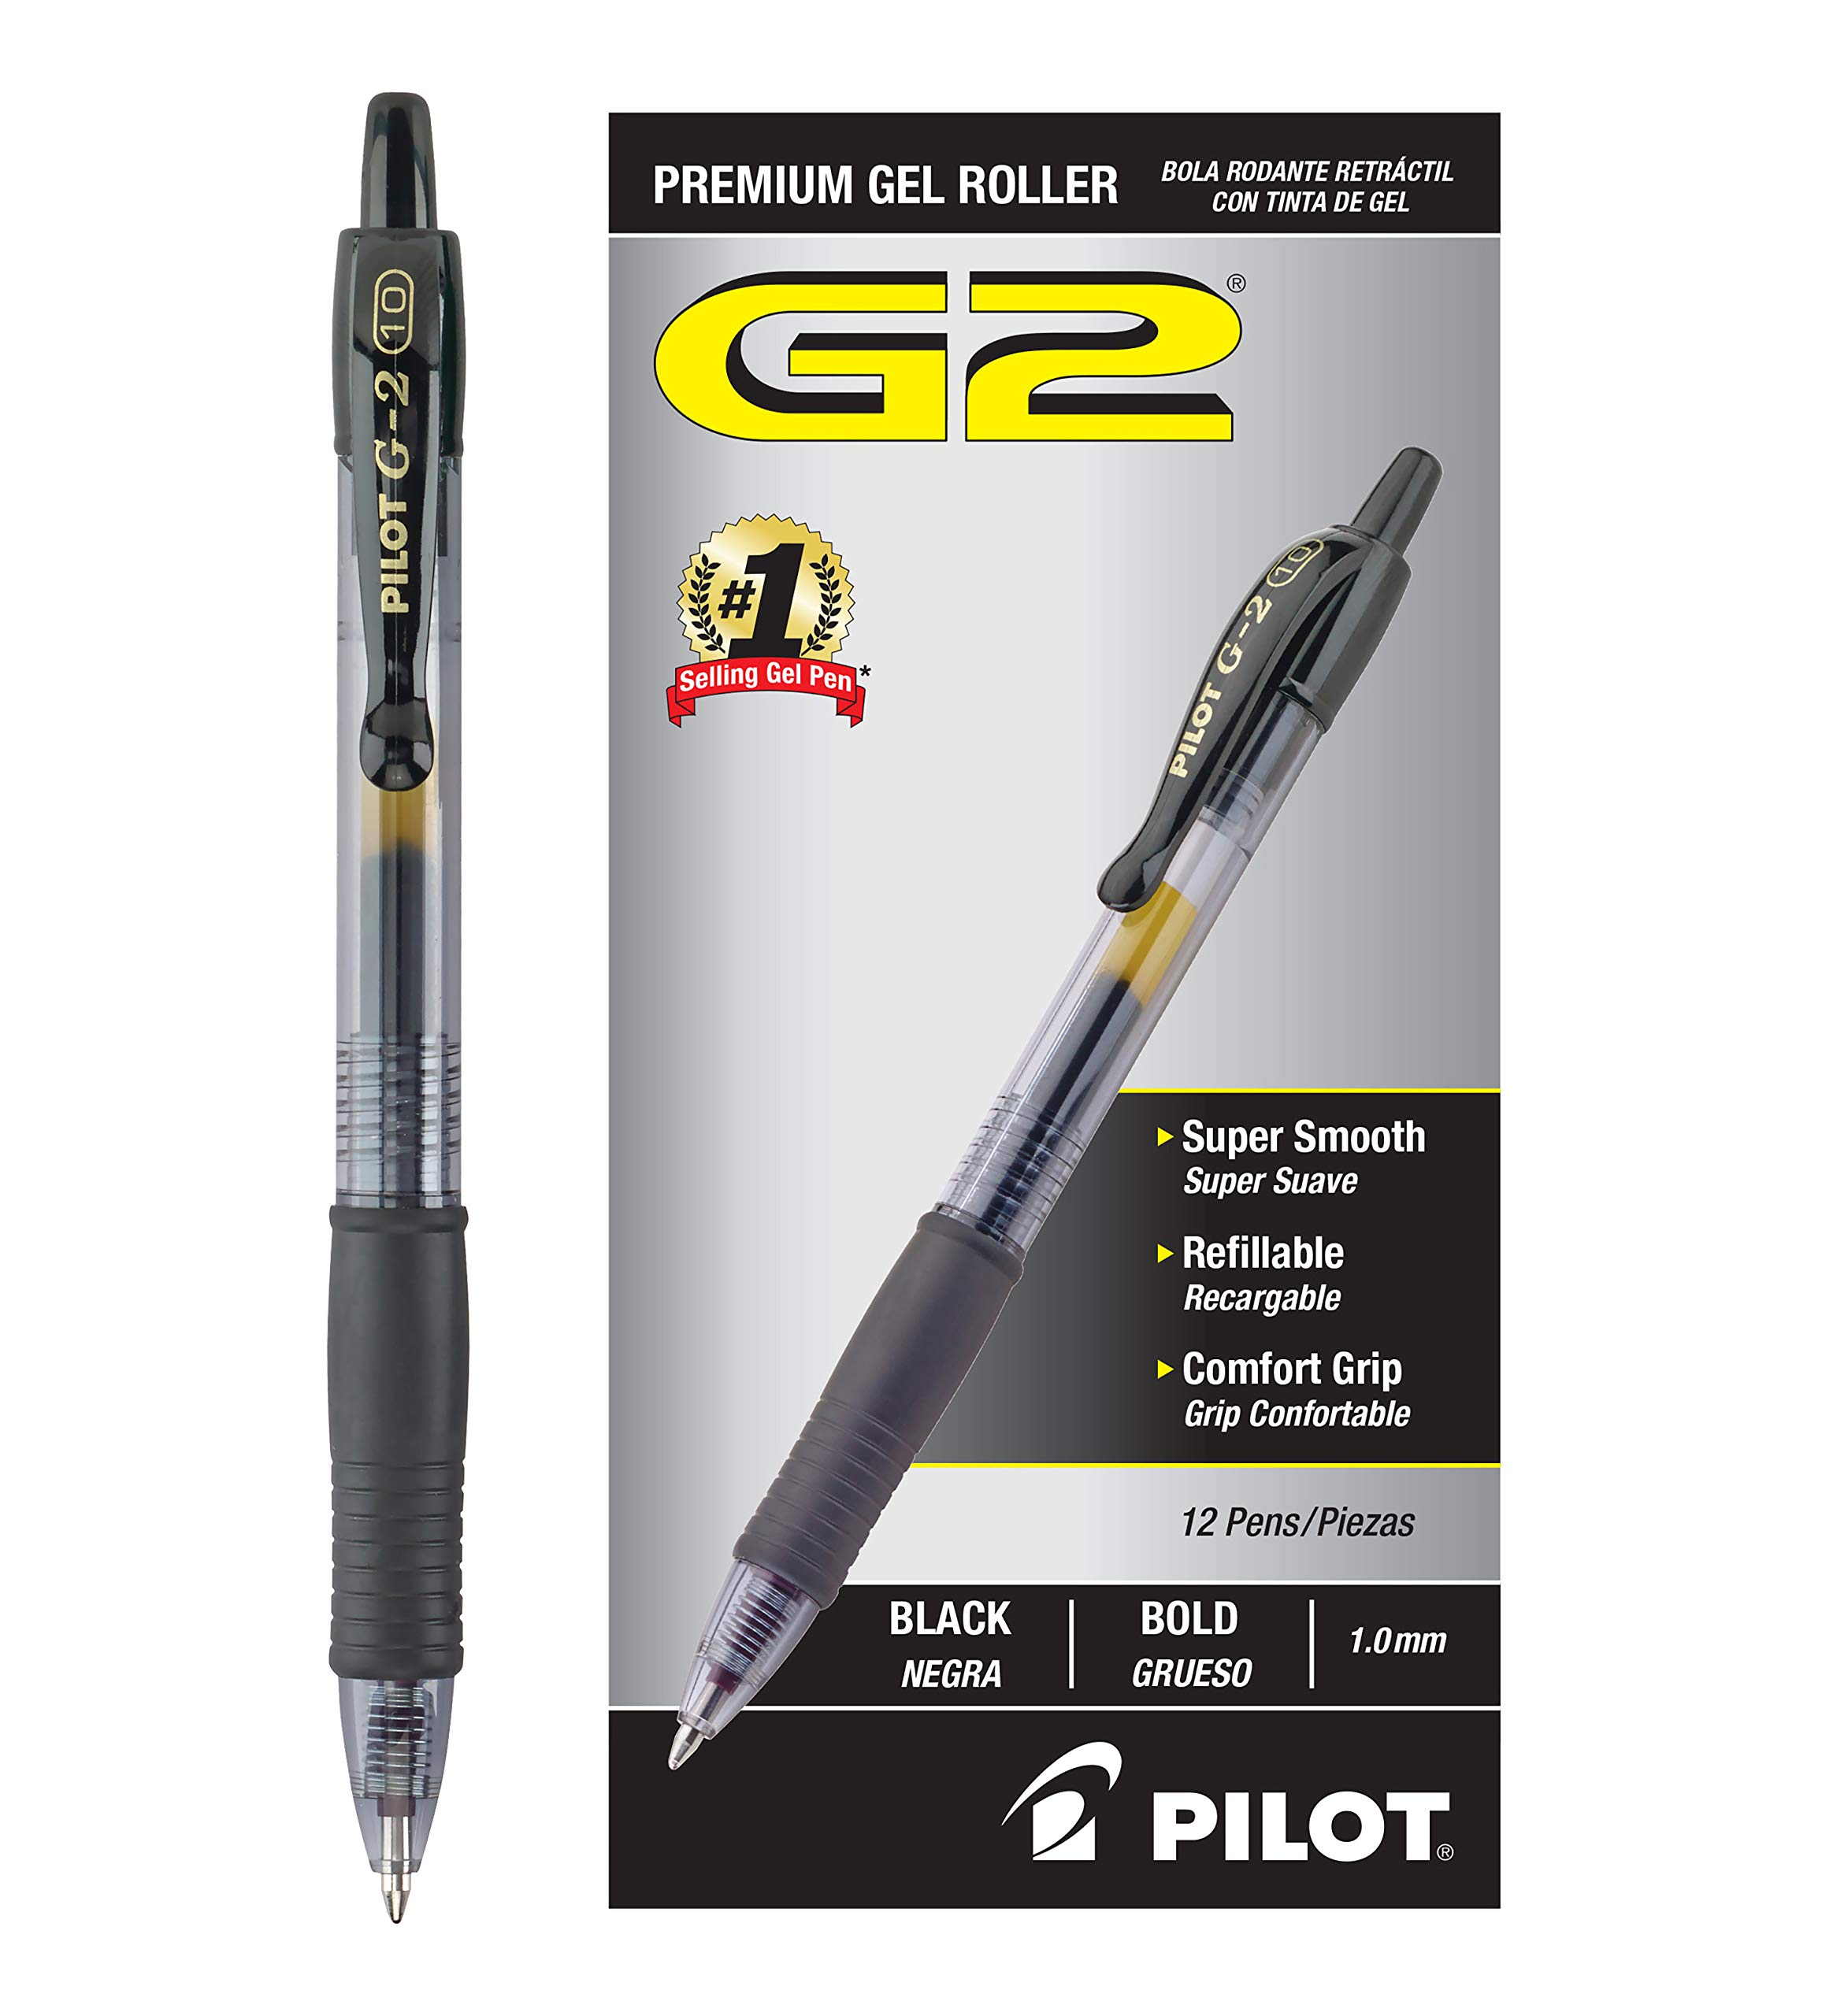 Pilot G2 Retractable Premium Gel Ink Roller Ball Pens Bold Pt (1.) Dozen Box Black; Retractable, Refillable & Premium Comfort Grip; Smooth Lines to the End of the Page, America's #1 Selling Pen Brand by Pilot